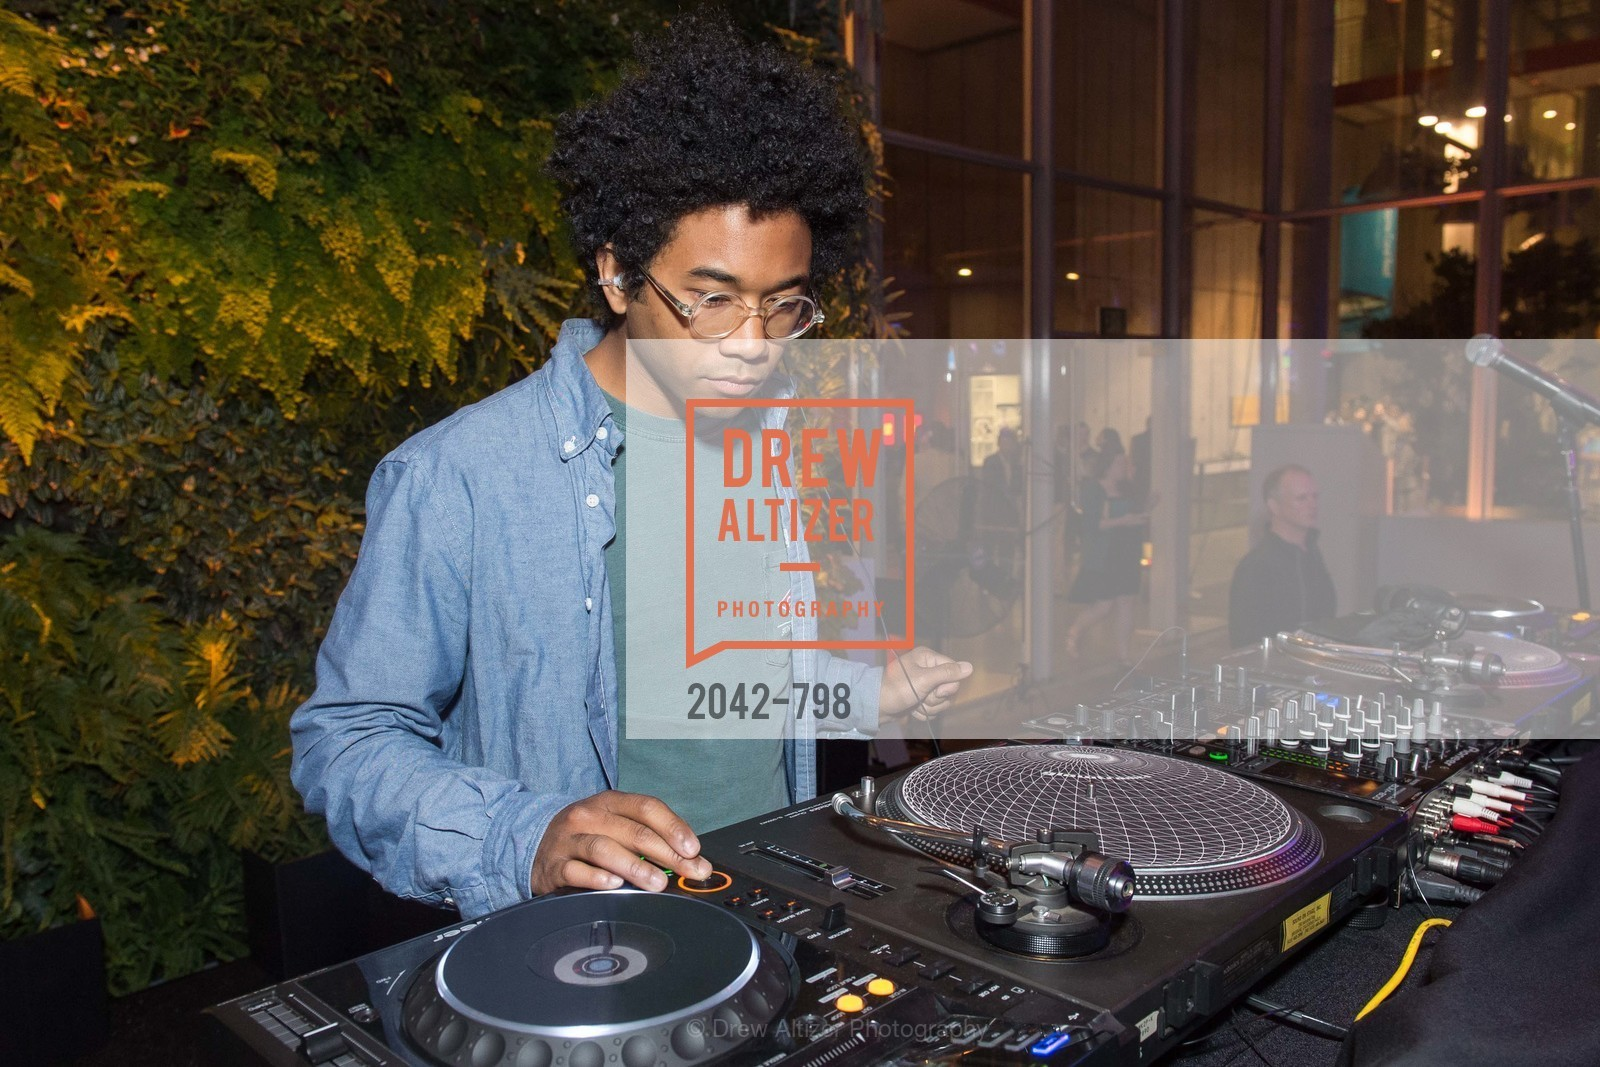 DJ Toro Y Moi, CALIFORNIA ACADEMY OF SCIENCES - Big Bang Gala 2015, US, April 24th, 2015,Drew Altizer, Drew Altizer Photography, full-service agency, private events, San Francisco photographer, photographer california